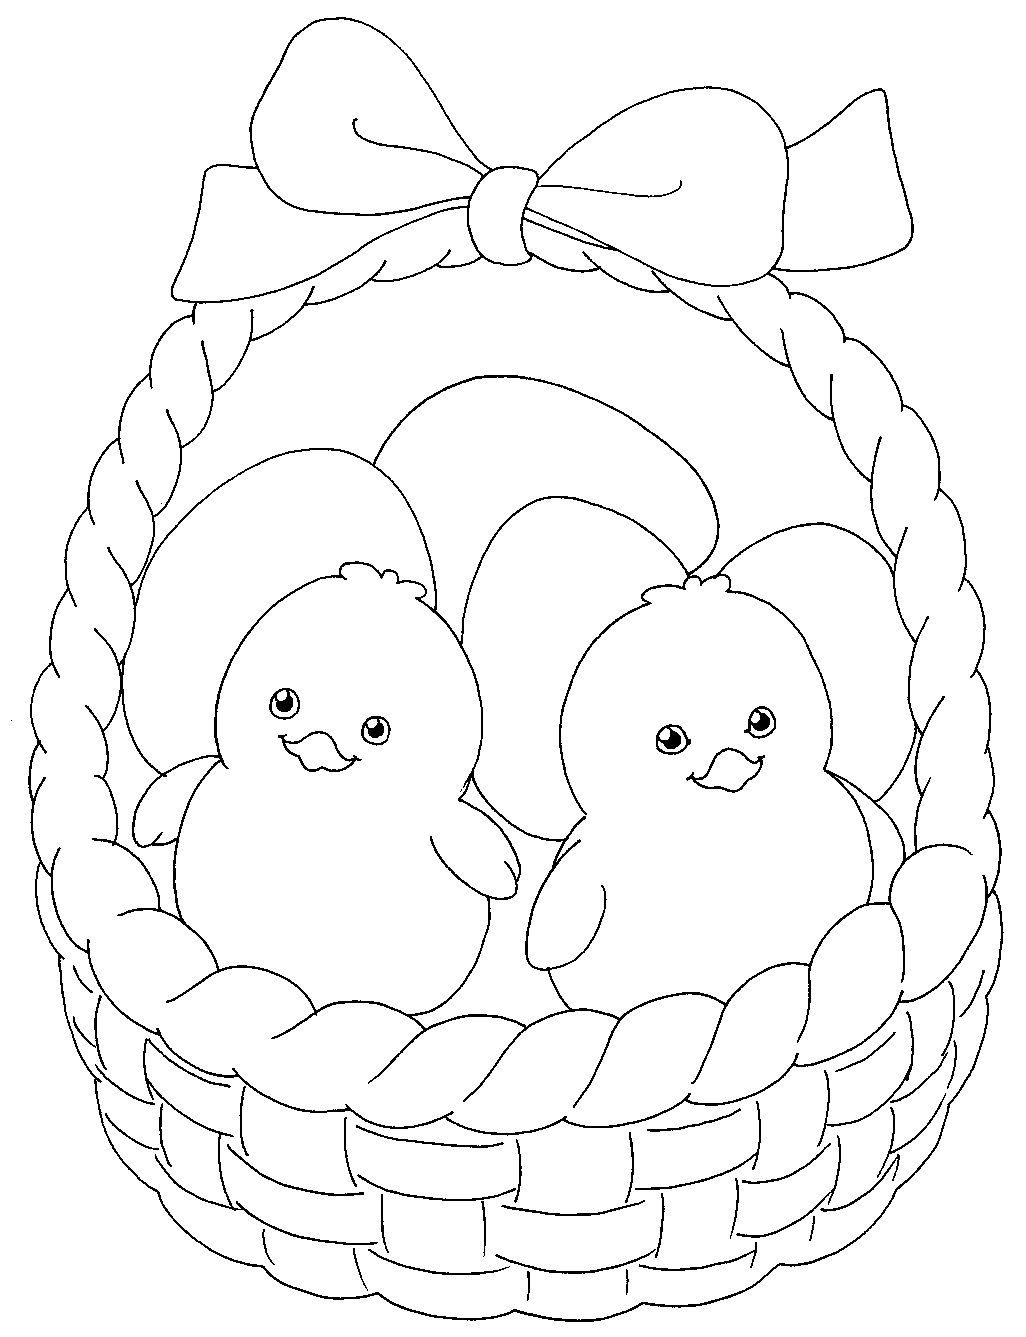 Here are two very cute Easter chicks in a basket for you to print